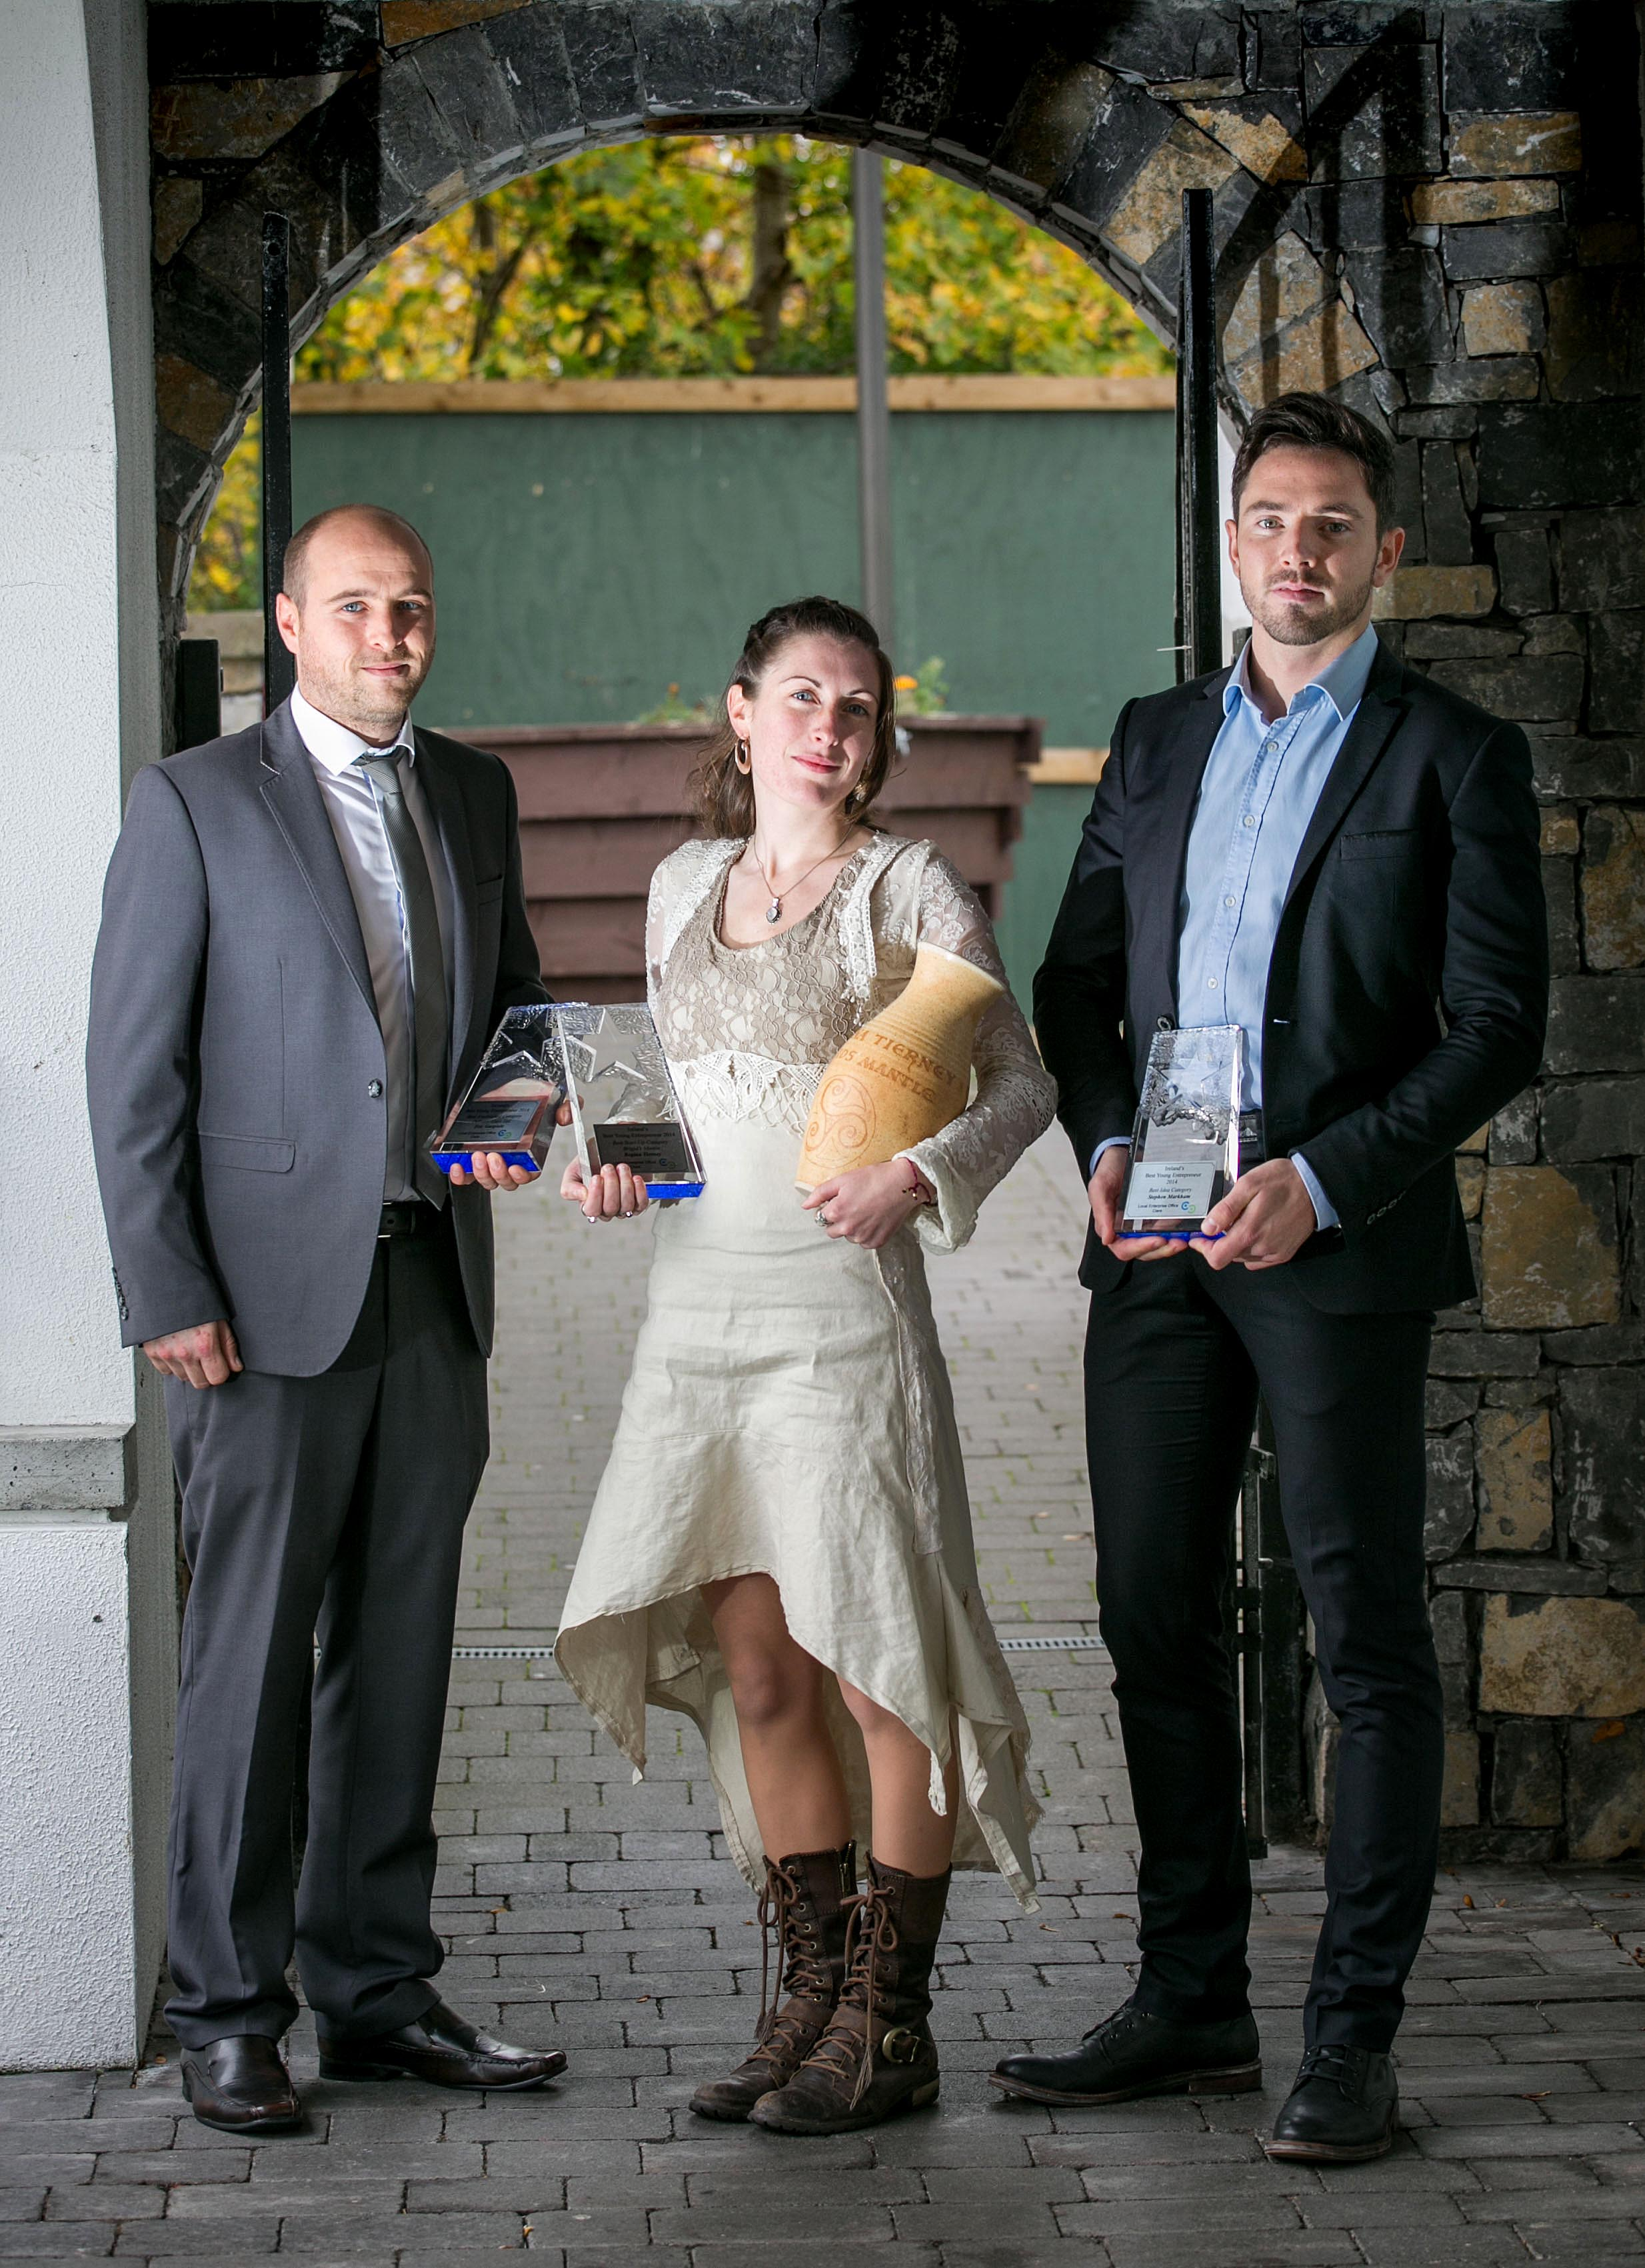 Pictured with her awards in Ennis Co Clare are L-R Eric Gargiulo of Delivery Guys Ltd. - an end to end ordering, payment and delivery service to the restaurant sector  - received €20,000 for winning 'Best Established Business (in business more than 18 months)',  Regina Tierney, Overall Winner of the 'Best Start-Up Business 'category of the competition and Steve Markham of hAppie - a boutique mobile application developer and publisher - was awarded €10,000 for winning the 'Best Idea (for a new business)' category. Pic Arthur Ellis.